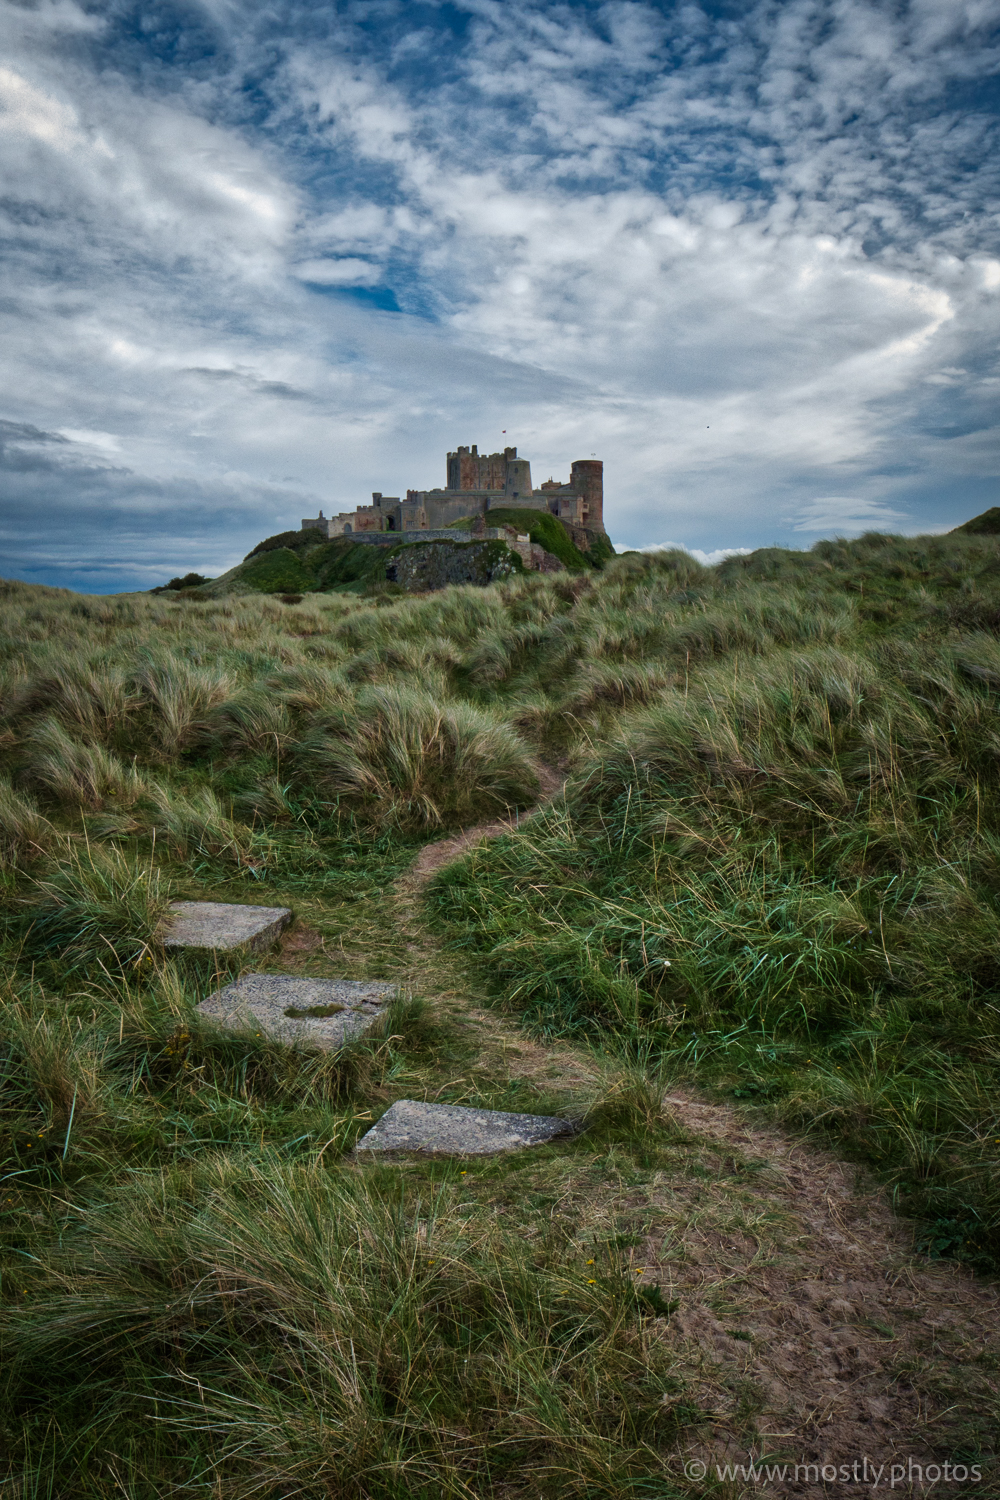 Bamburgh Castle FUJI X-T2 and Fuji 16mm f1.4